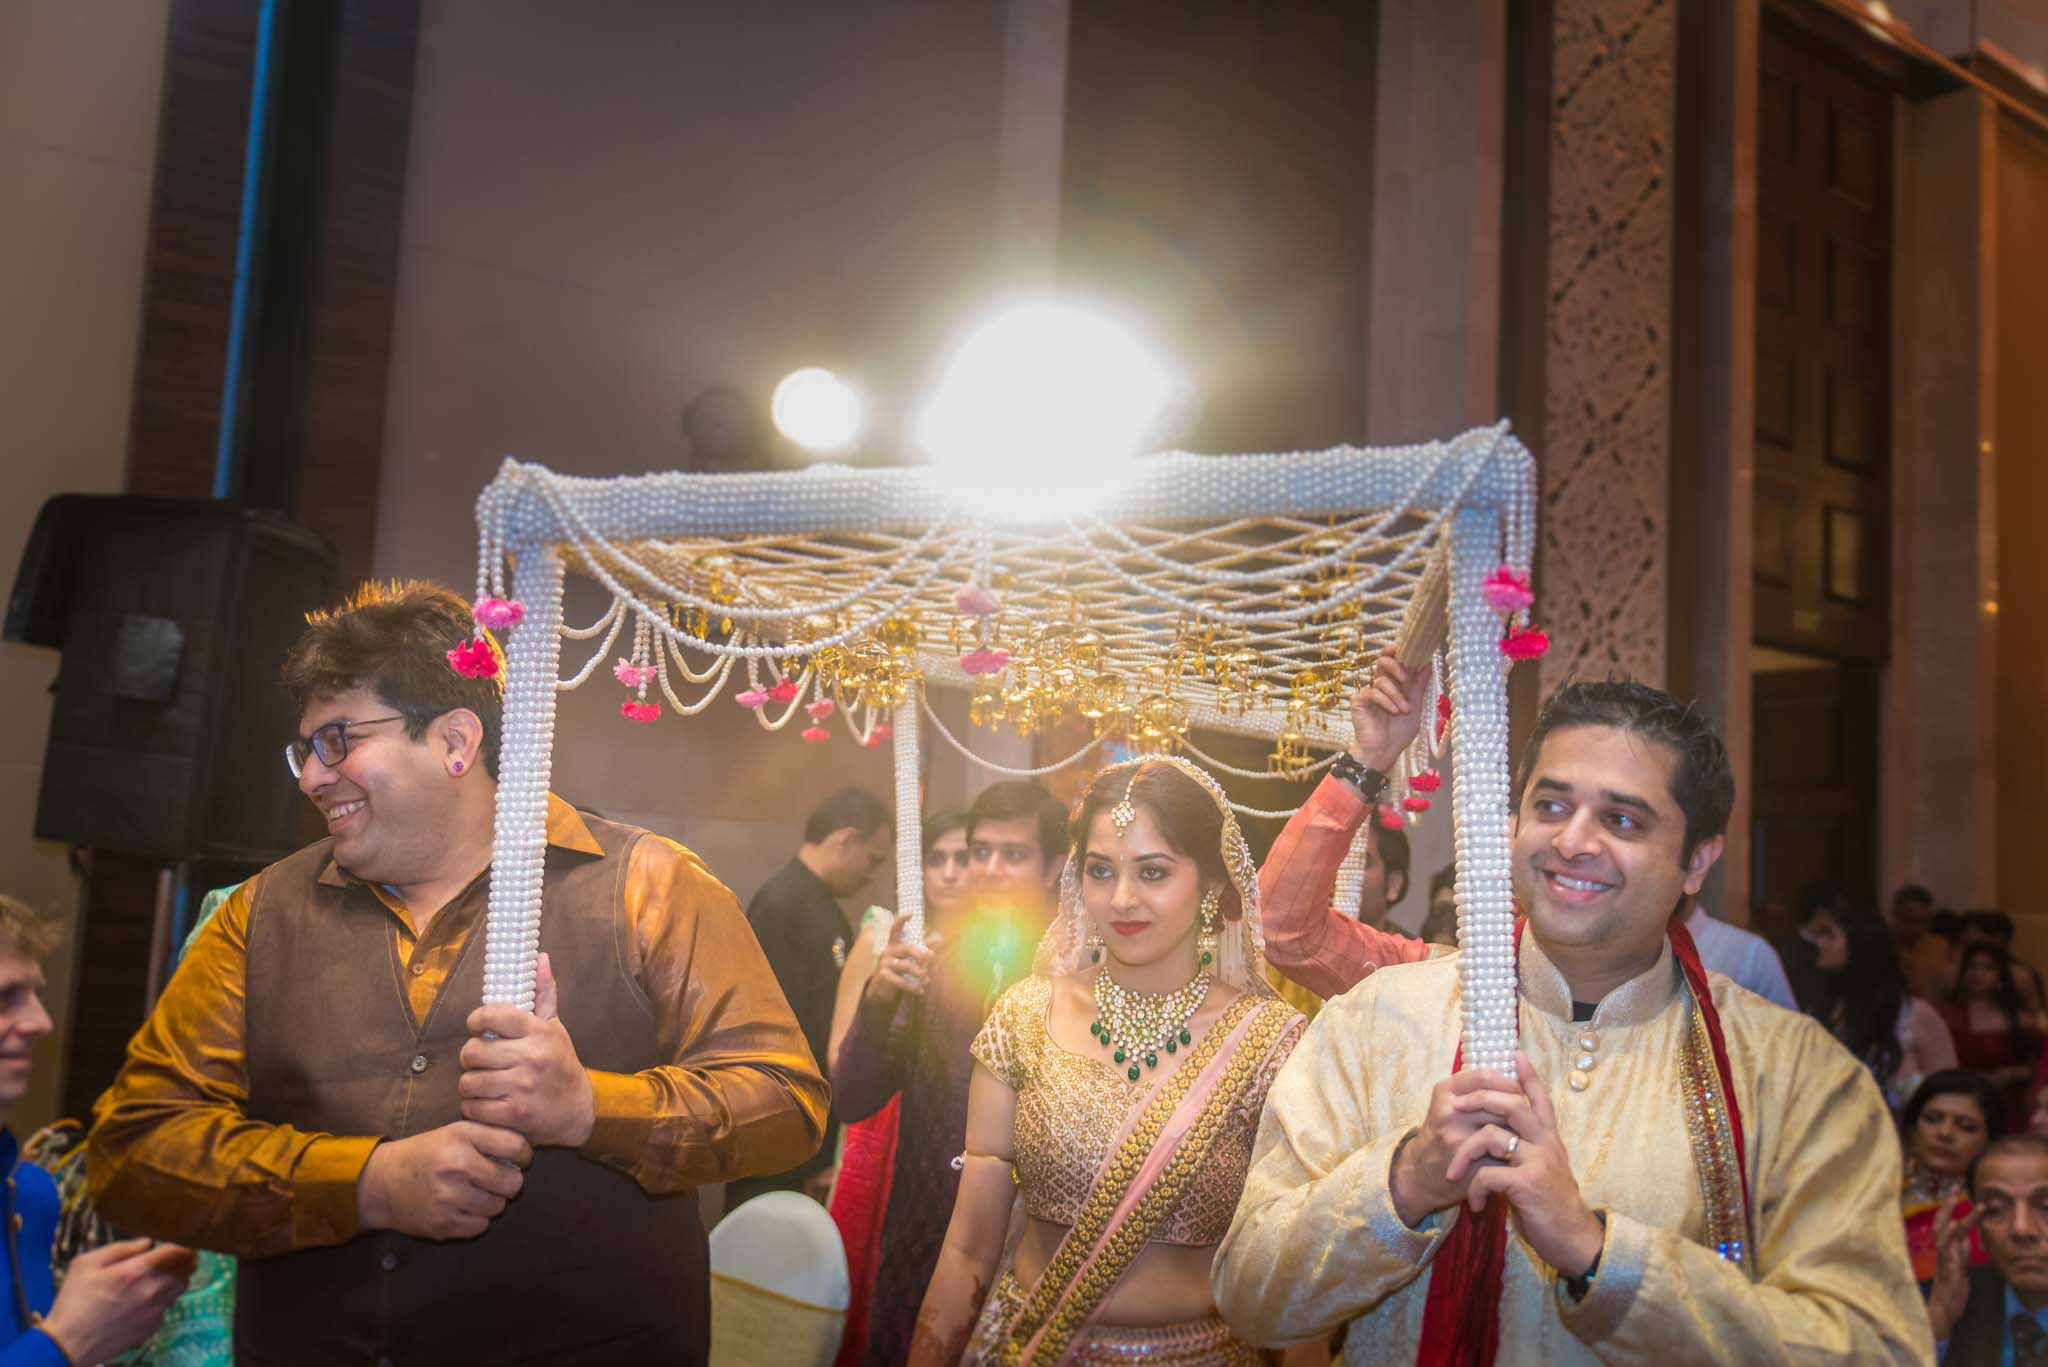 StRegis-Palladium-Mumbai-Candid-Wedding-Photography-39